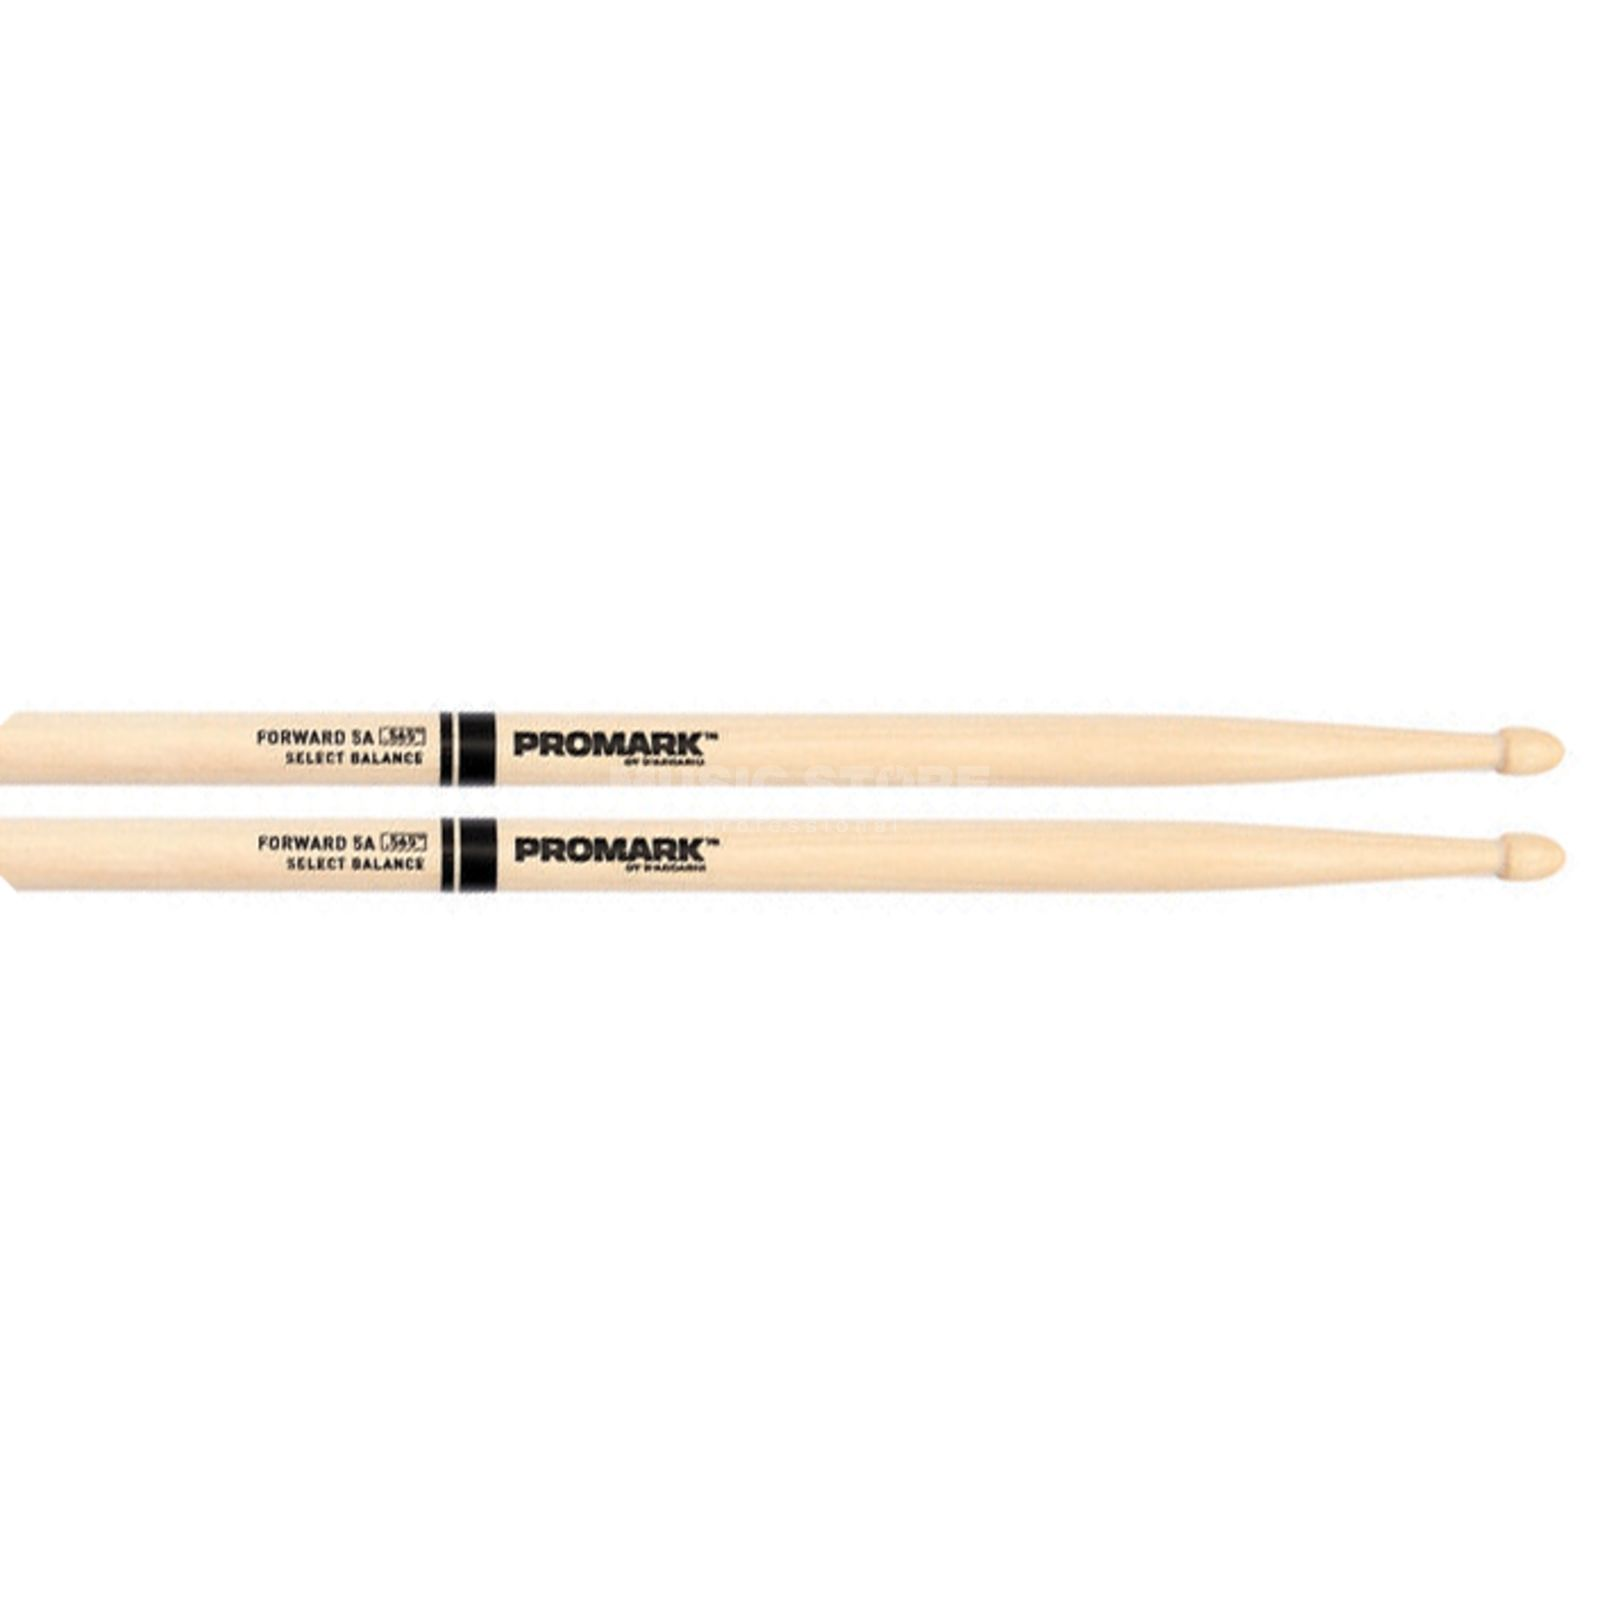 PRO-MARK Select Balance Sticks FBH565AW Forward Balance, Acorn Tip Product Image